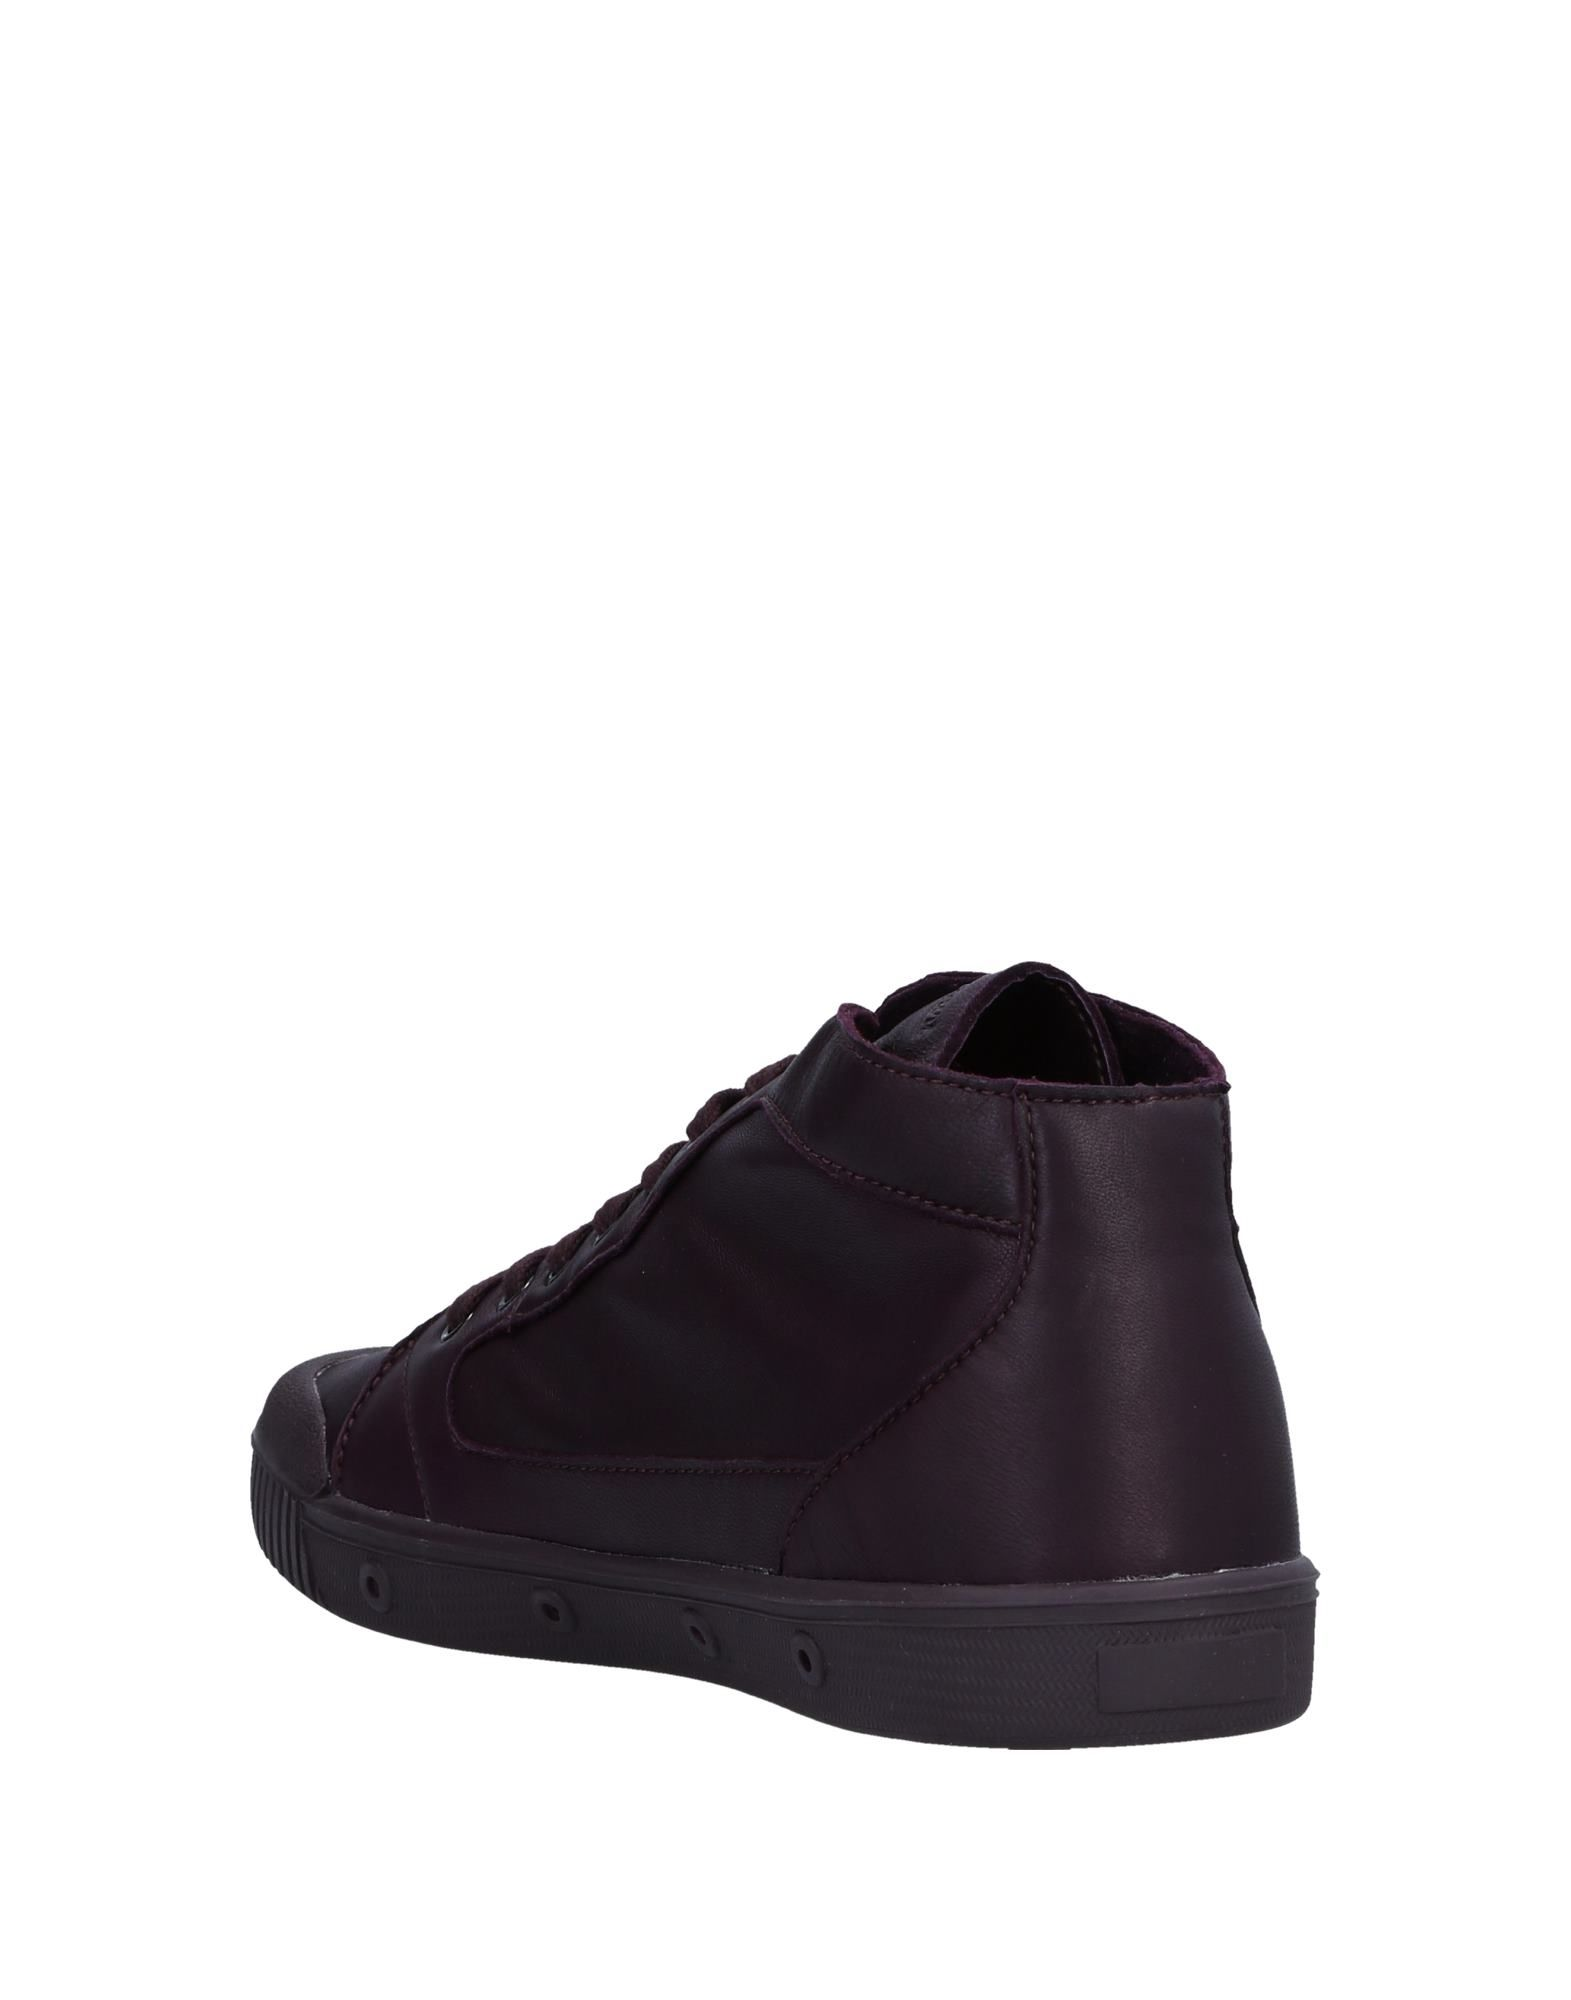 Spring Court Sneakers  Damen  Sneakers 11535193TP  2ee3a2